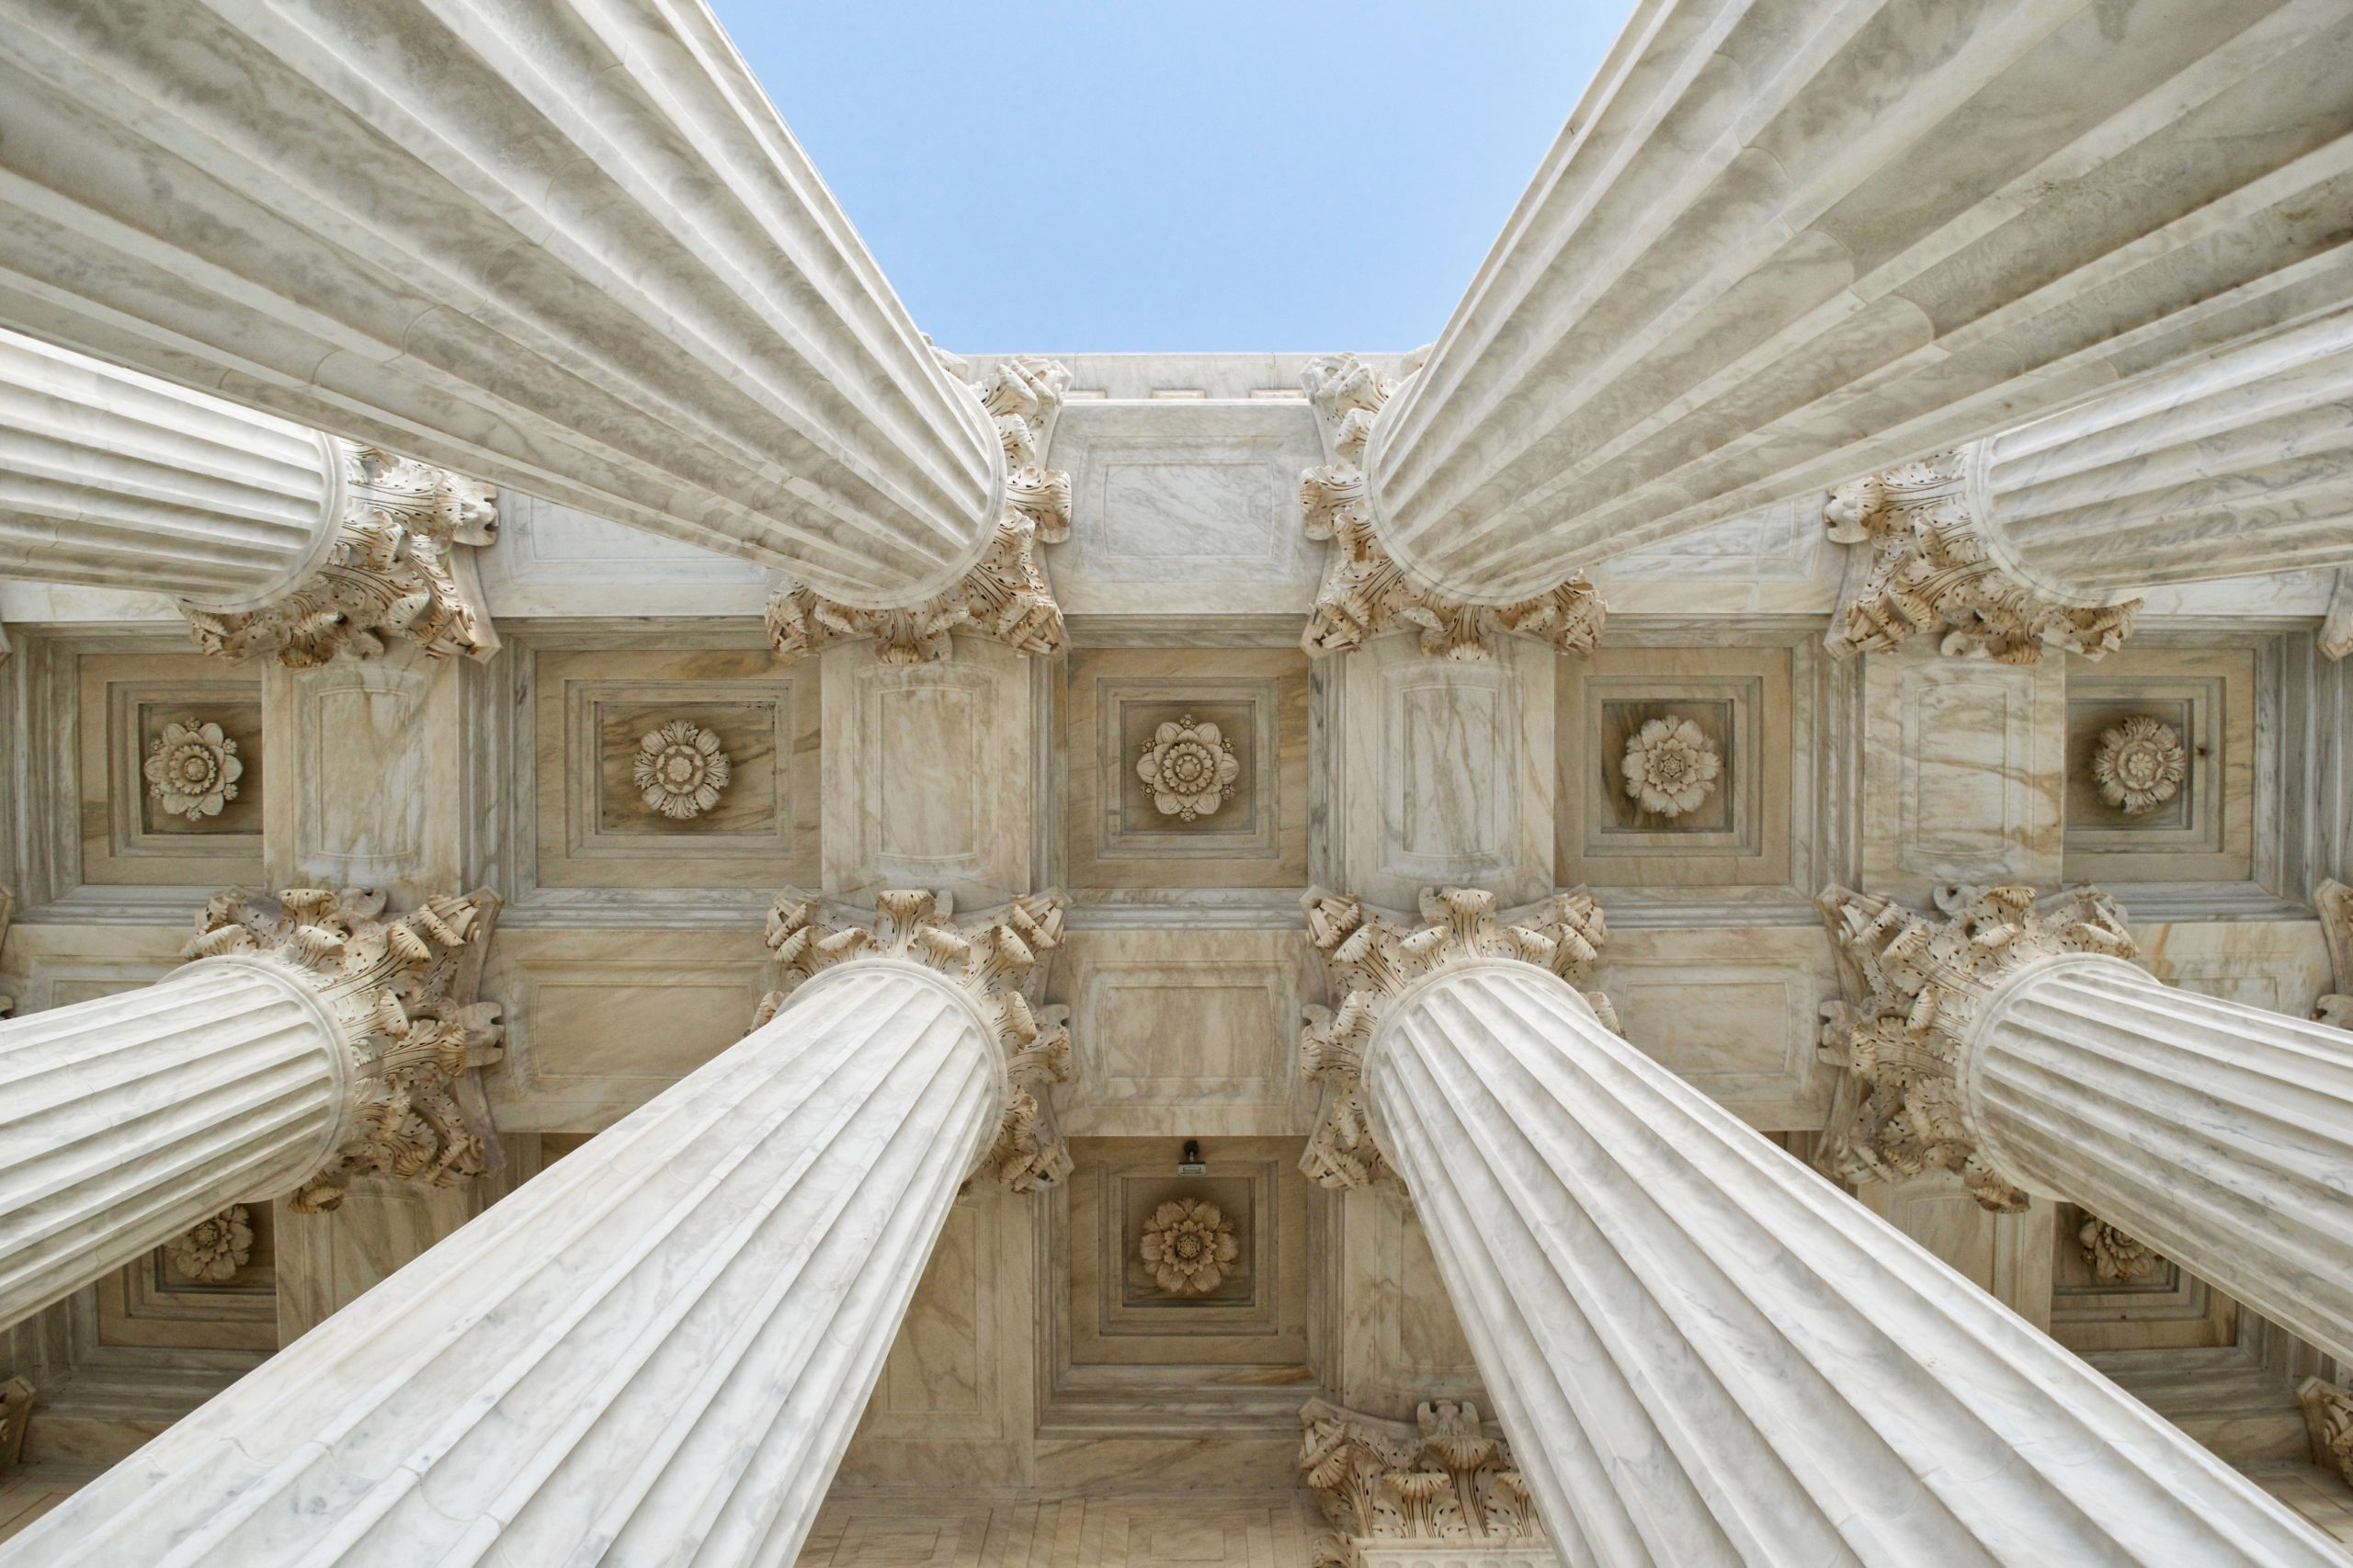 PA Municipal Governments Can Prepare to Defend Against Possible Wrongful Death Lawsuits from COVID-19